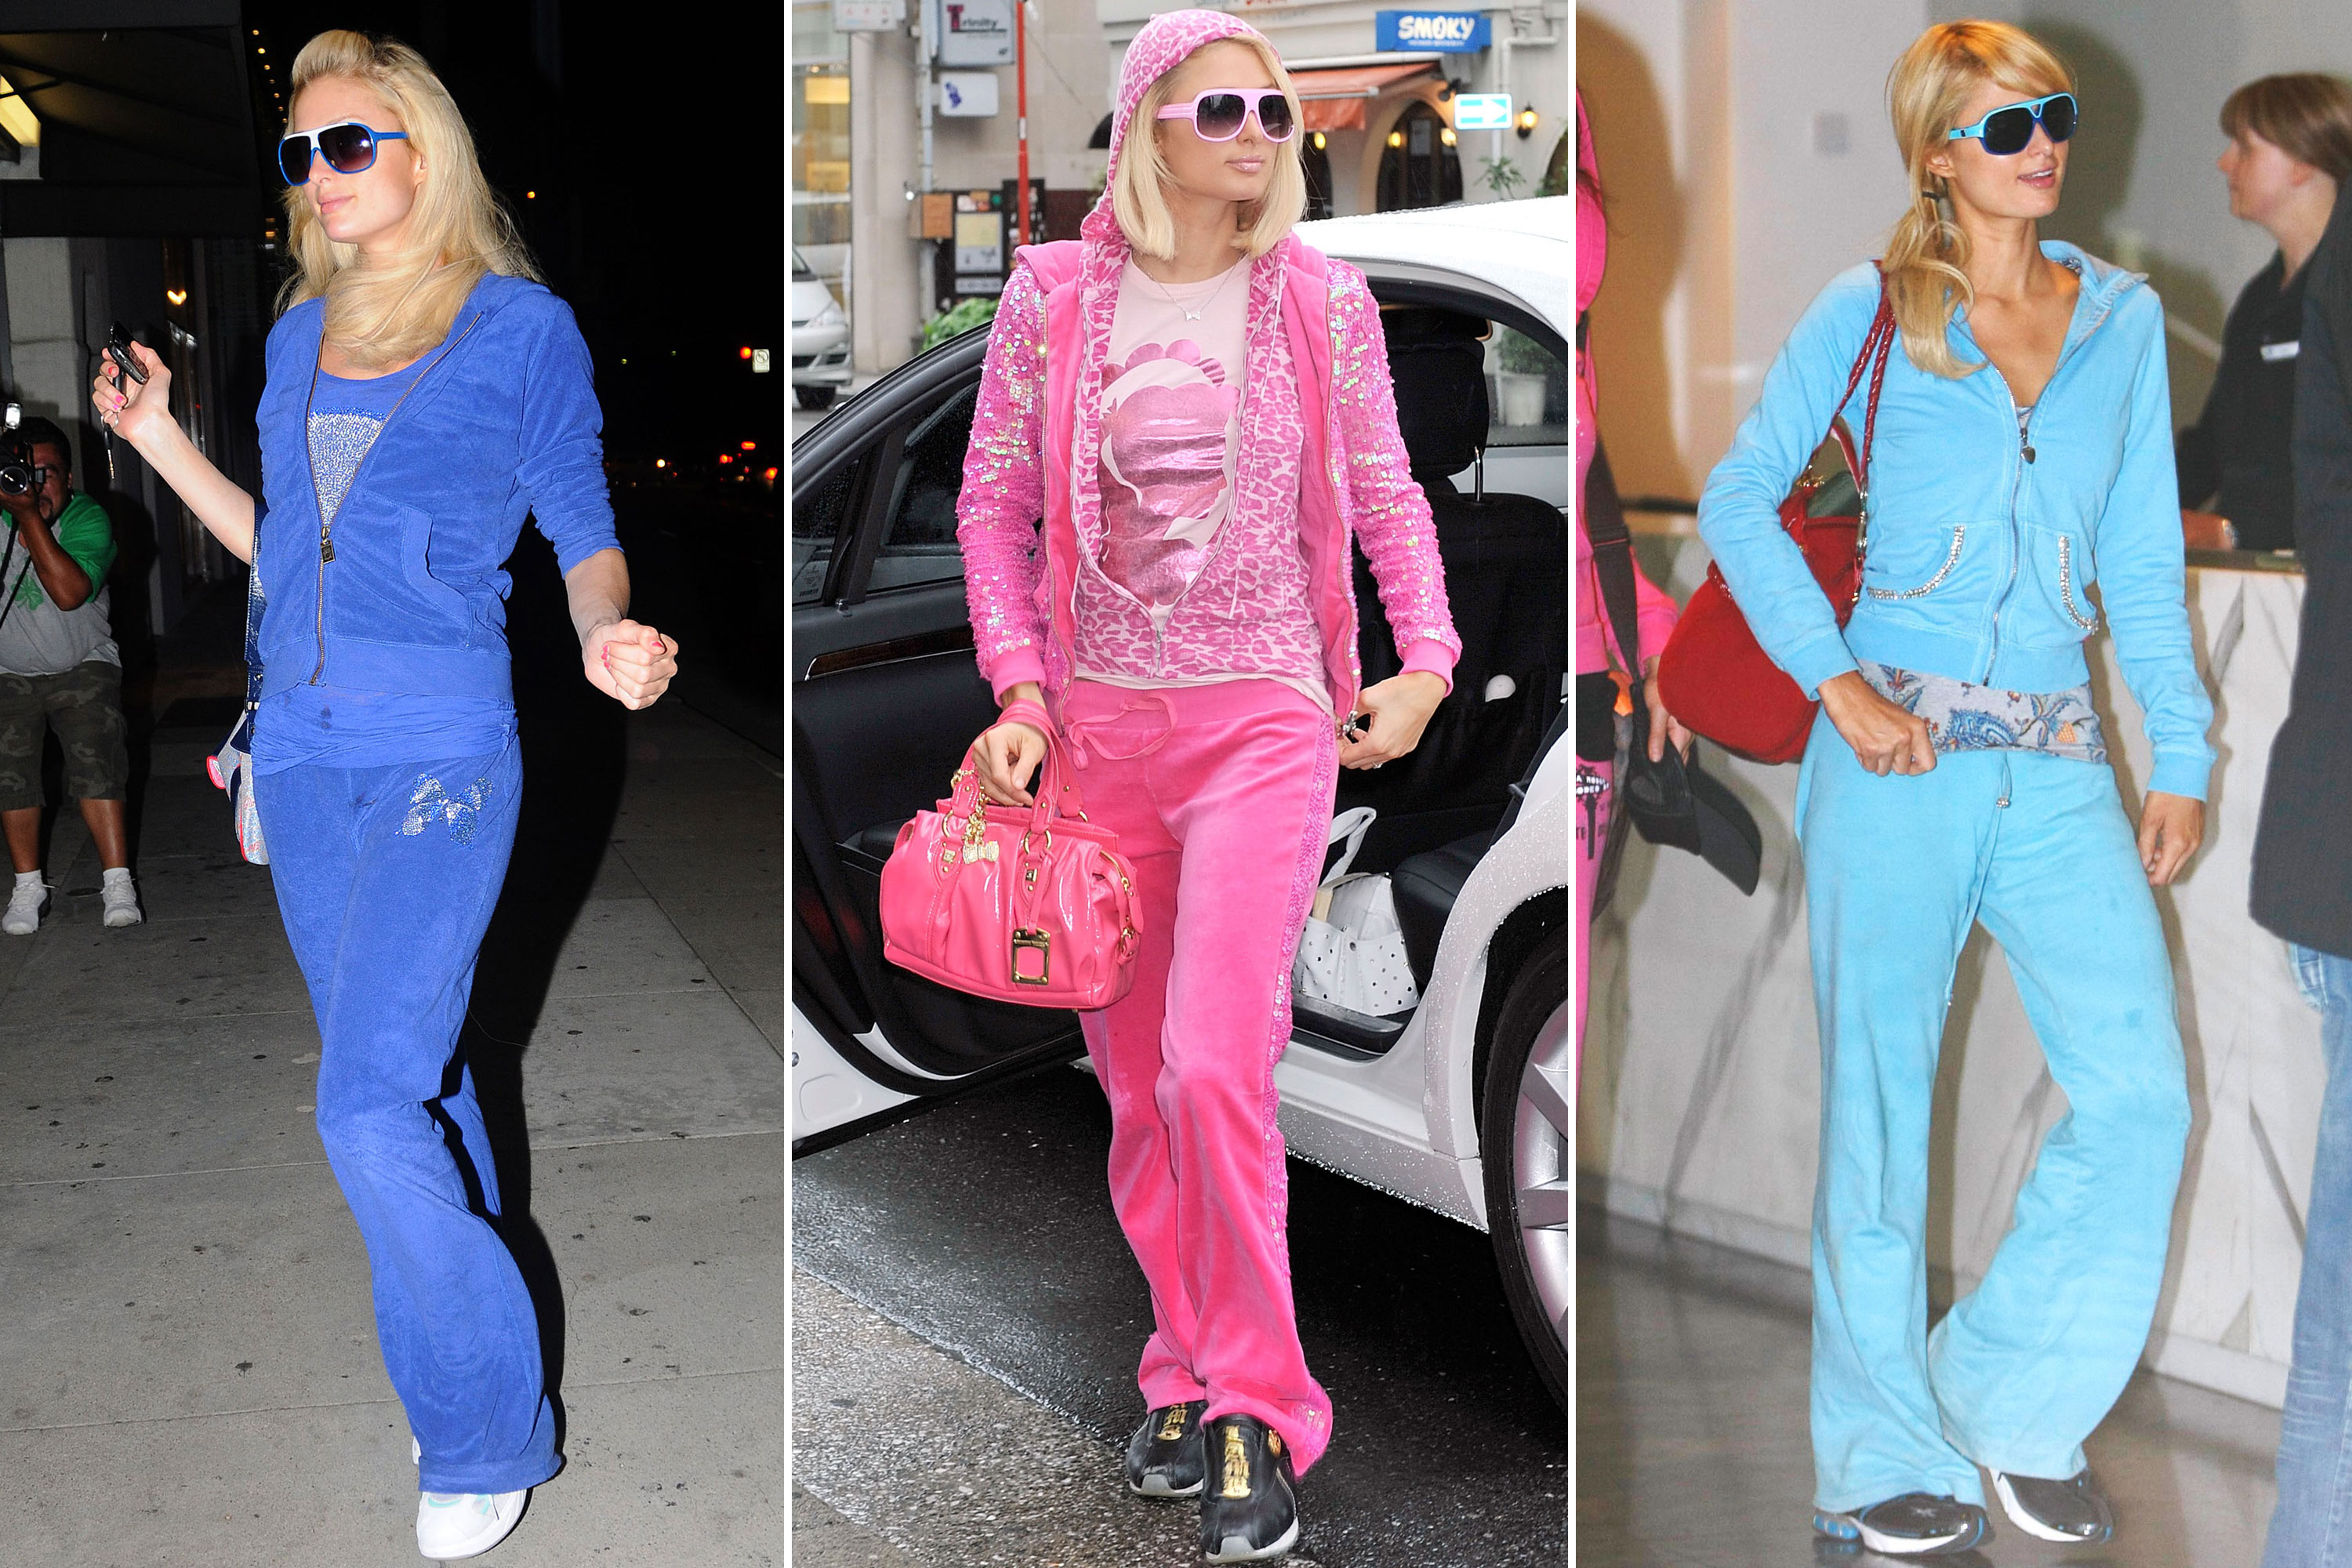 Paris Hilton Says She Owns 100 Juicy Couture Tracksuits